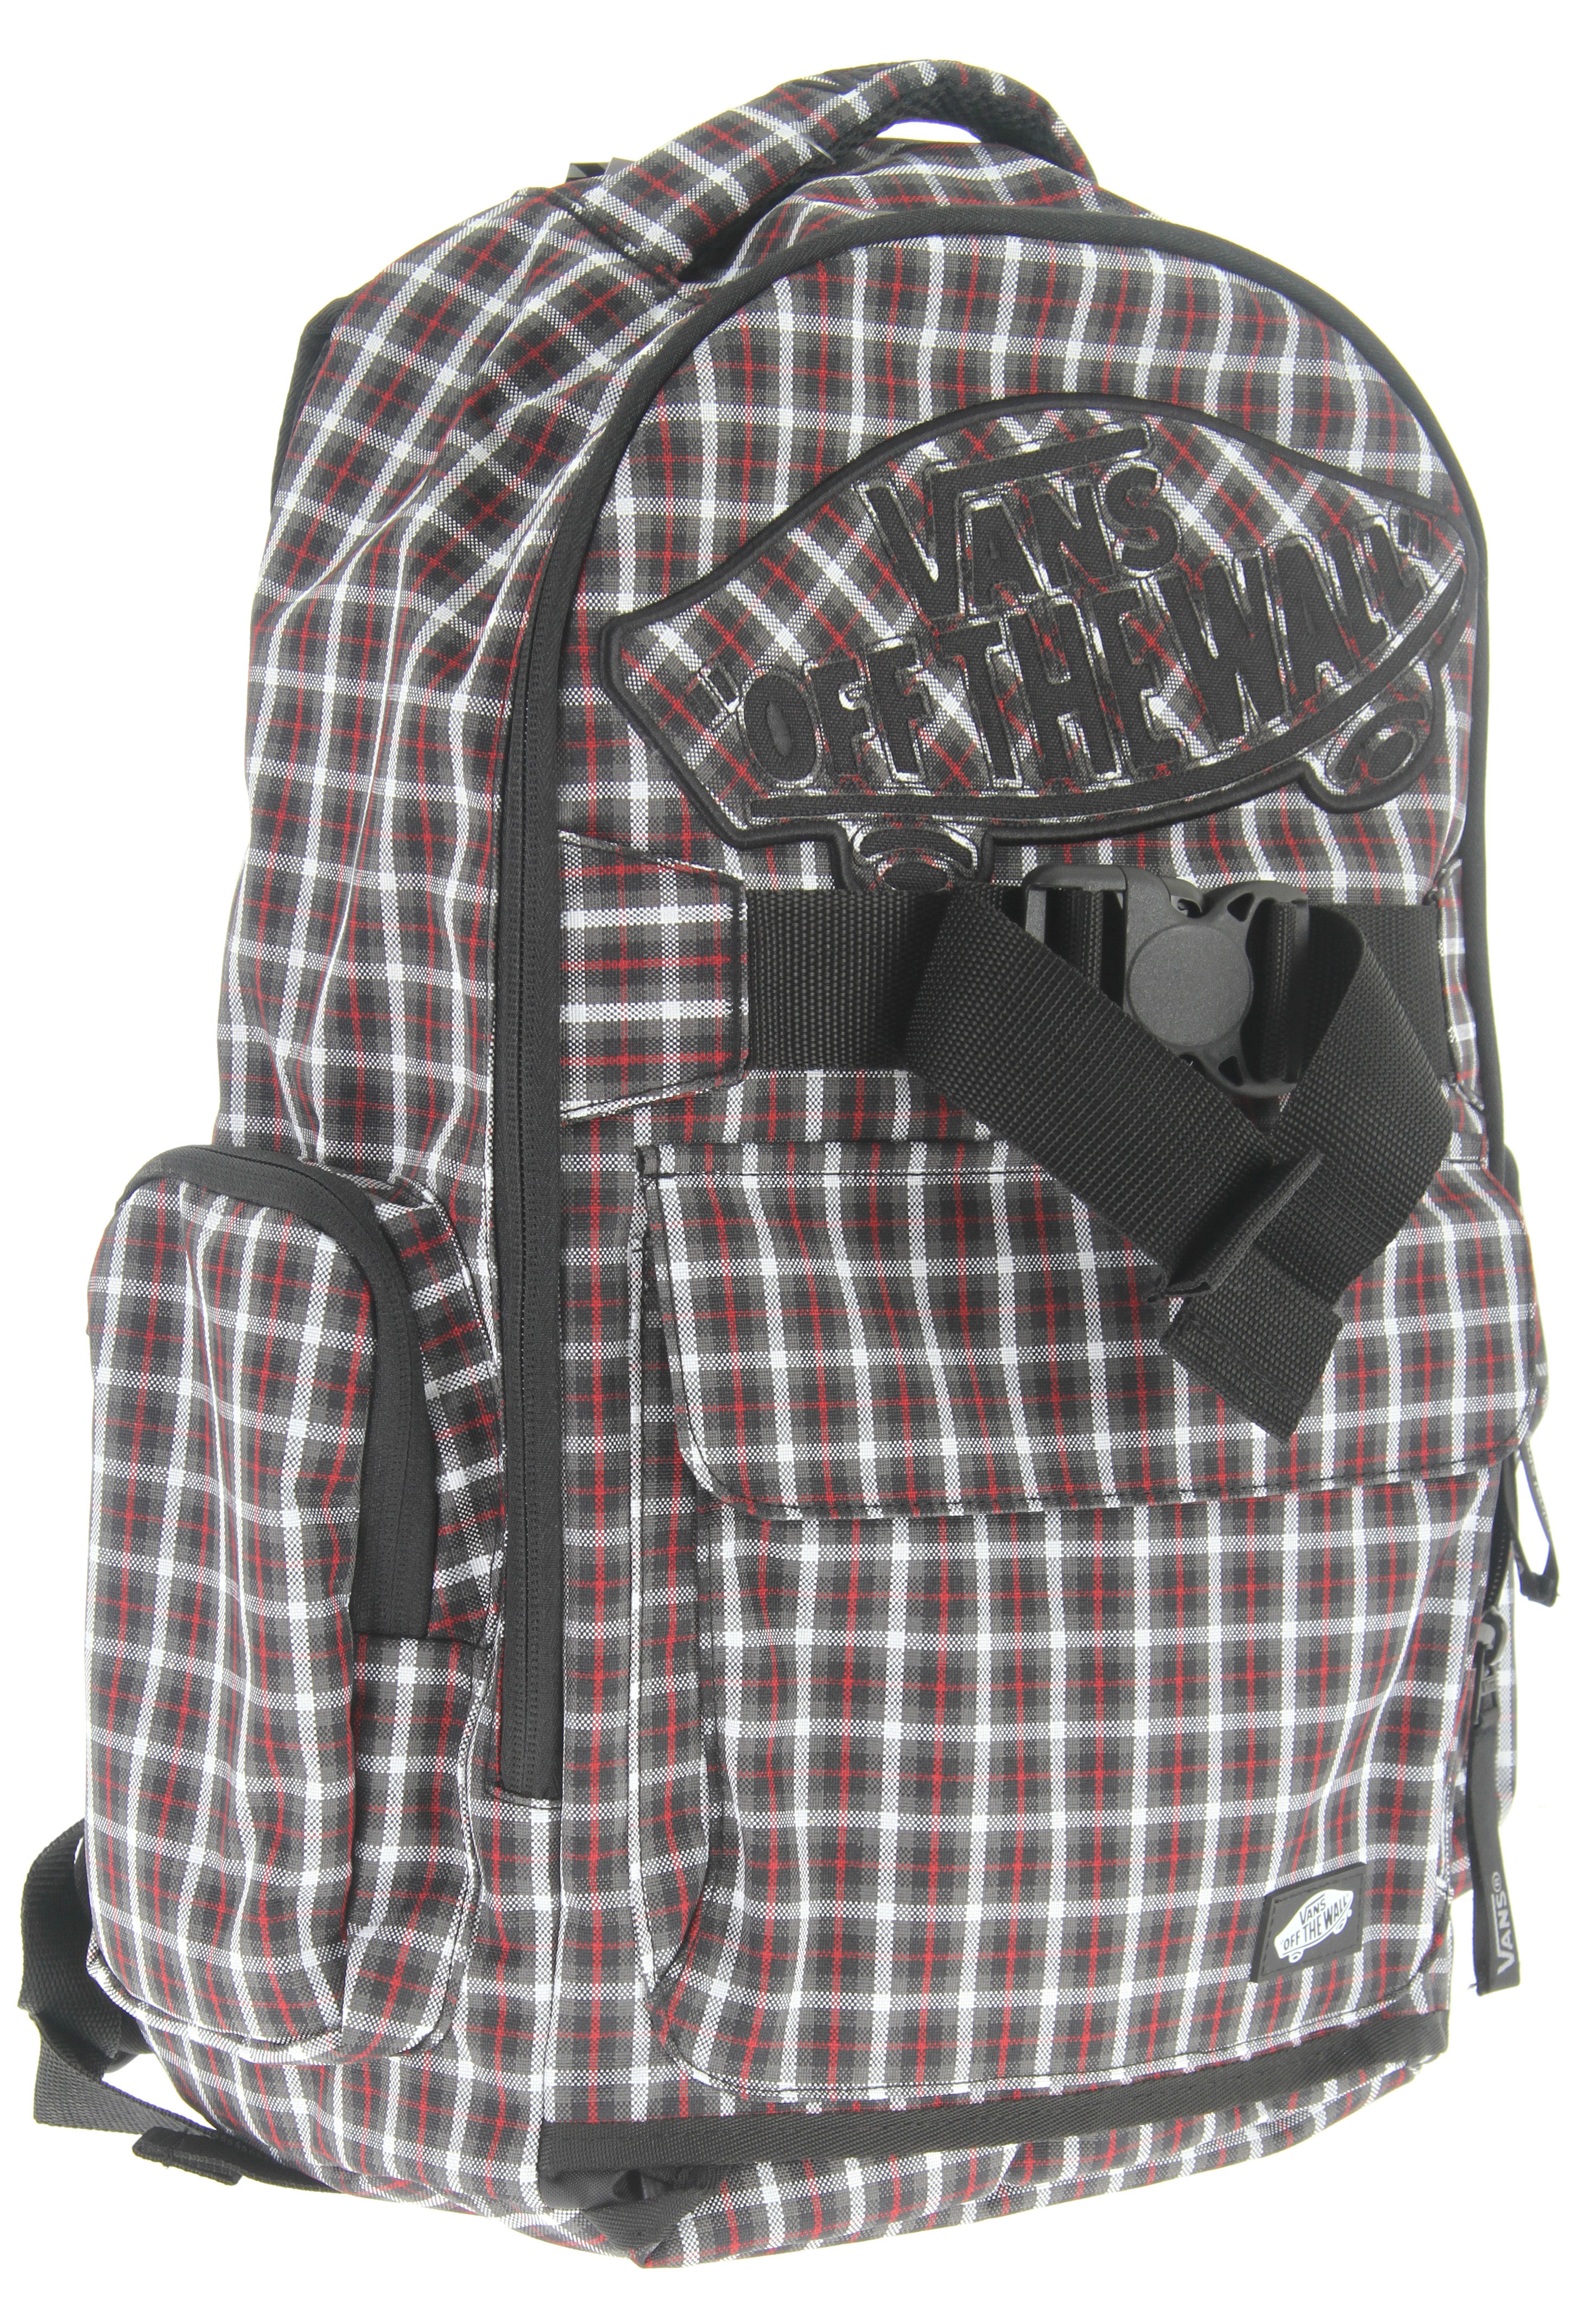 Skateboard Vans Underhill 2 Backpack - $17.95